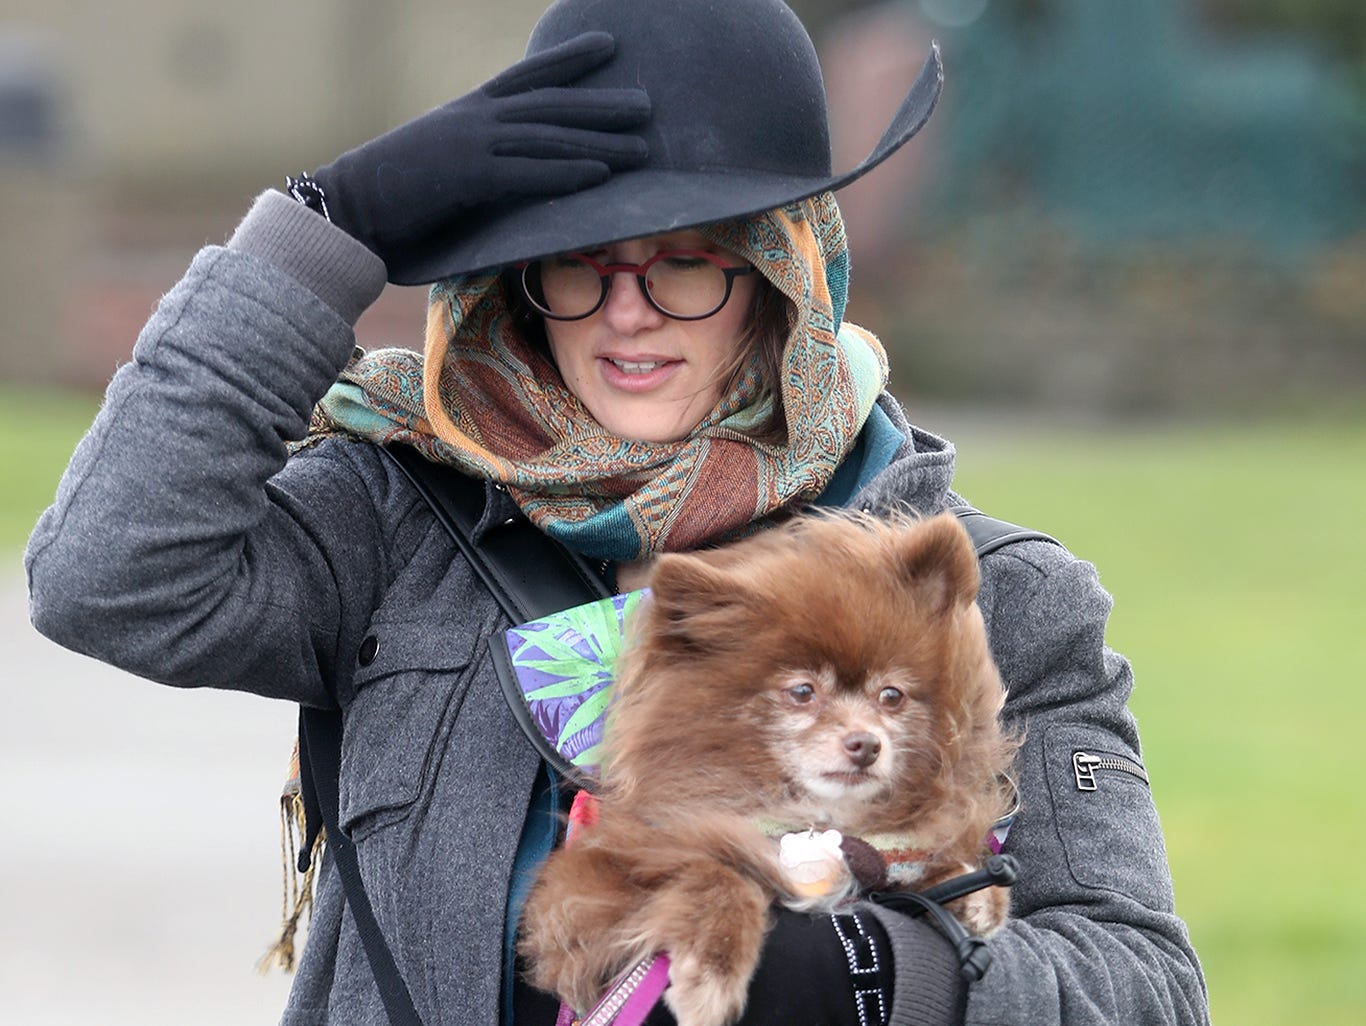 Svetlana Skalican of Kingston holds her dog Nola as she holds her hat in the wind at Mike Wallace Park in Kingston on Thursday, December, 20, 2018.